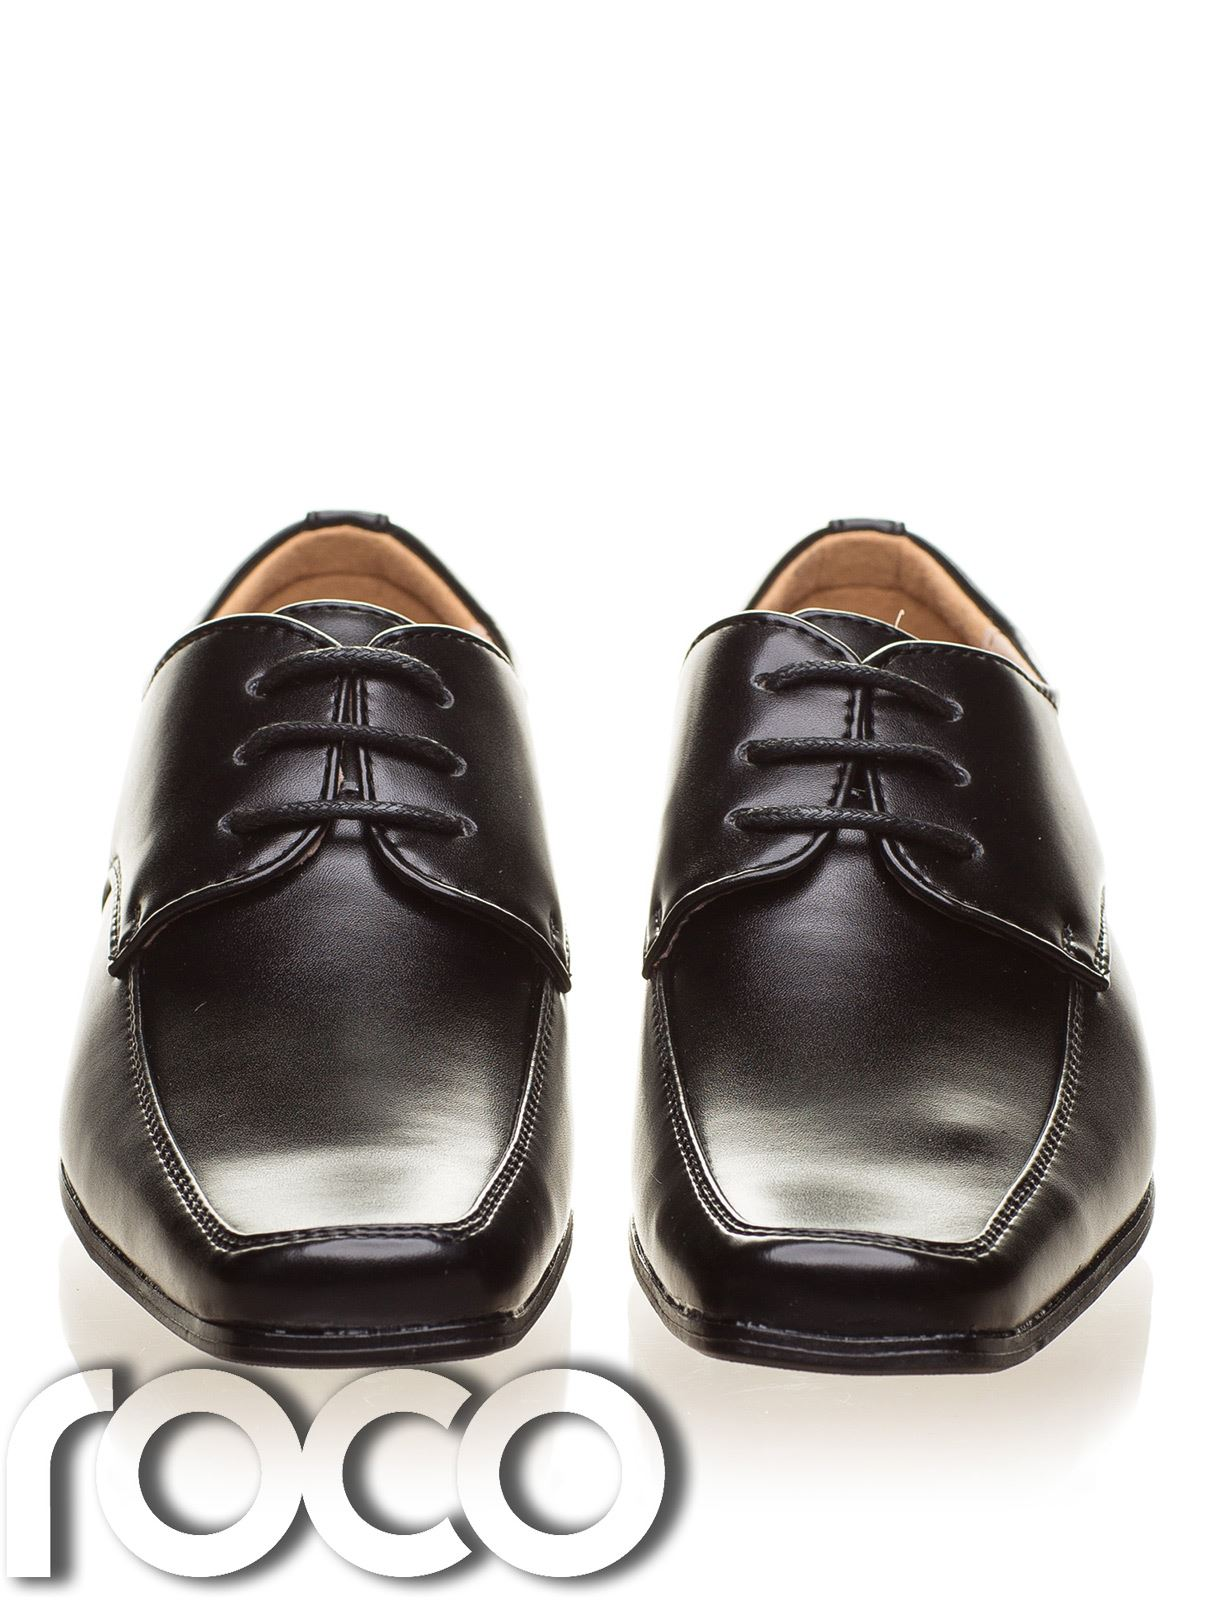 Boys-Black-Shoes-Boys-Brown-Shoes-Prom-Shoes-Page-Boys-Shoes-Formal-Shoes